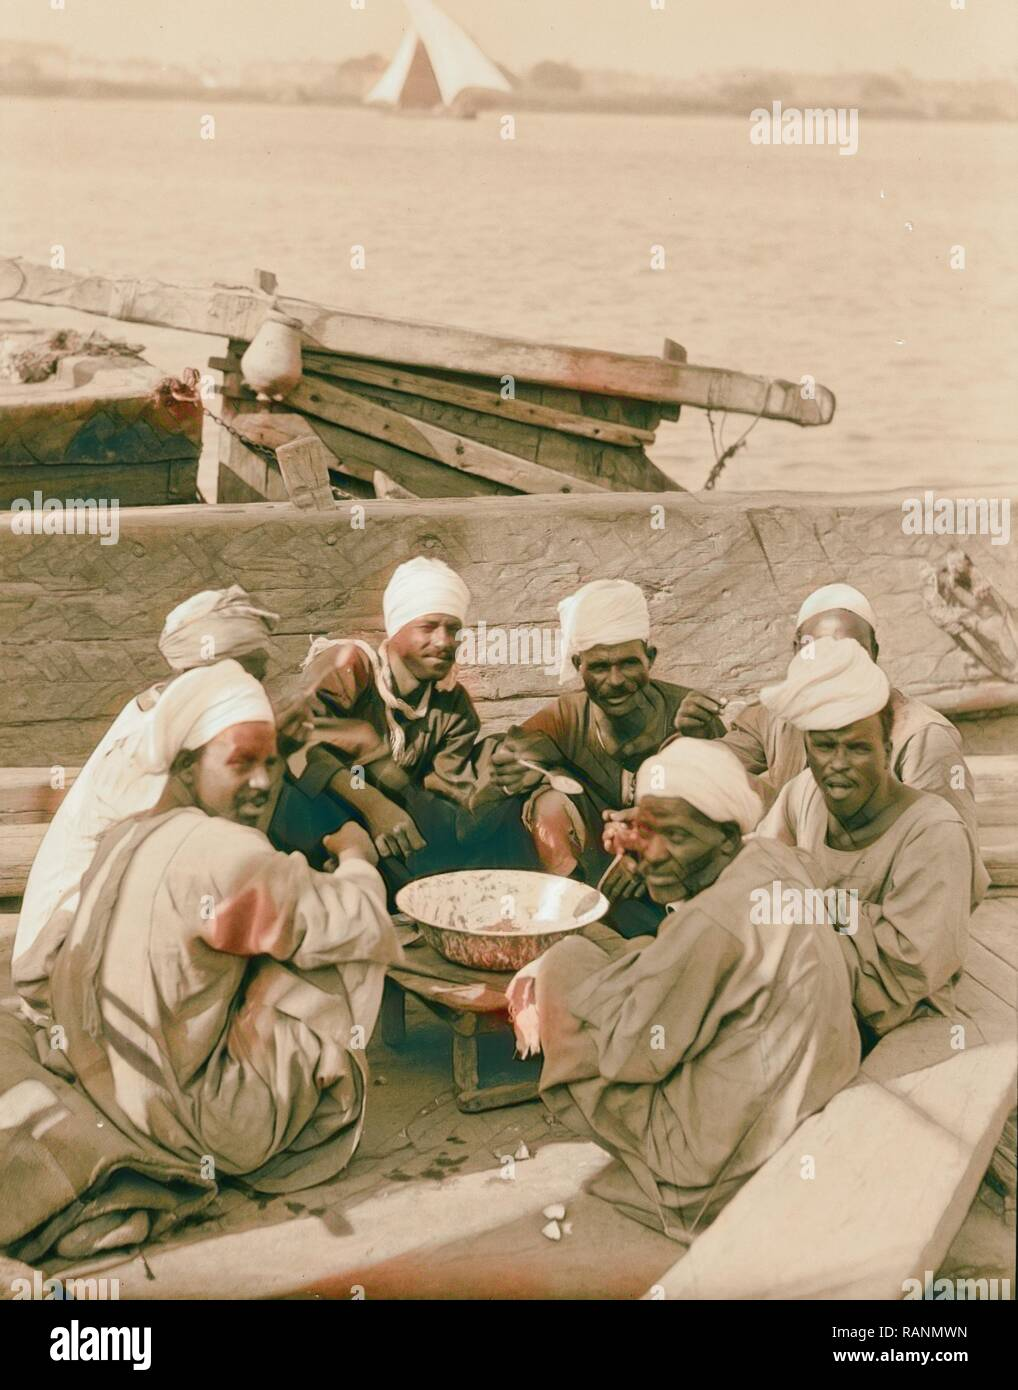 Cairo and district, Egypt. Luncheon on the Nile. Boatmen at their noon-day meal. 1934, Egypt, Cairo. Reimagined - Stock Image